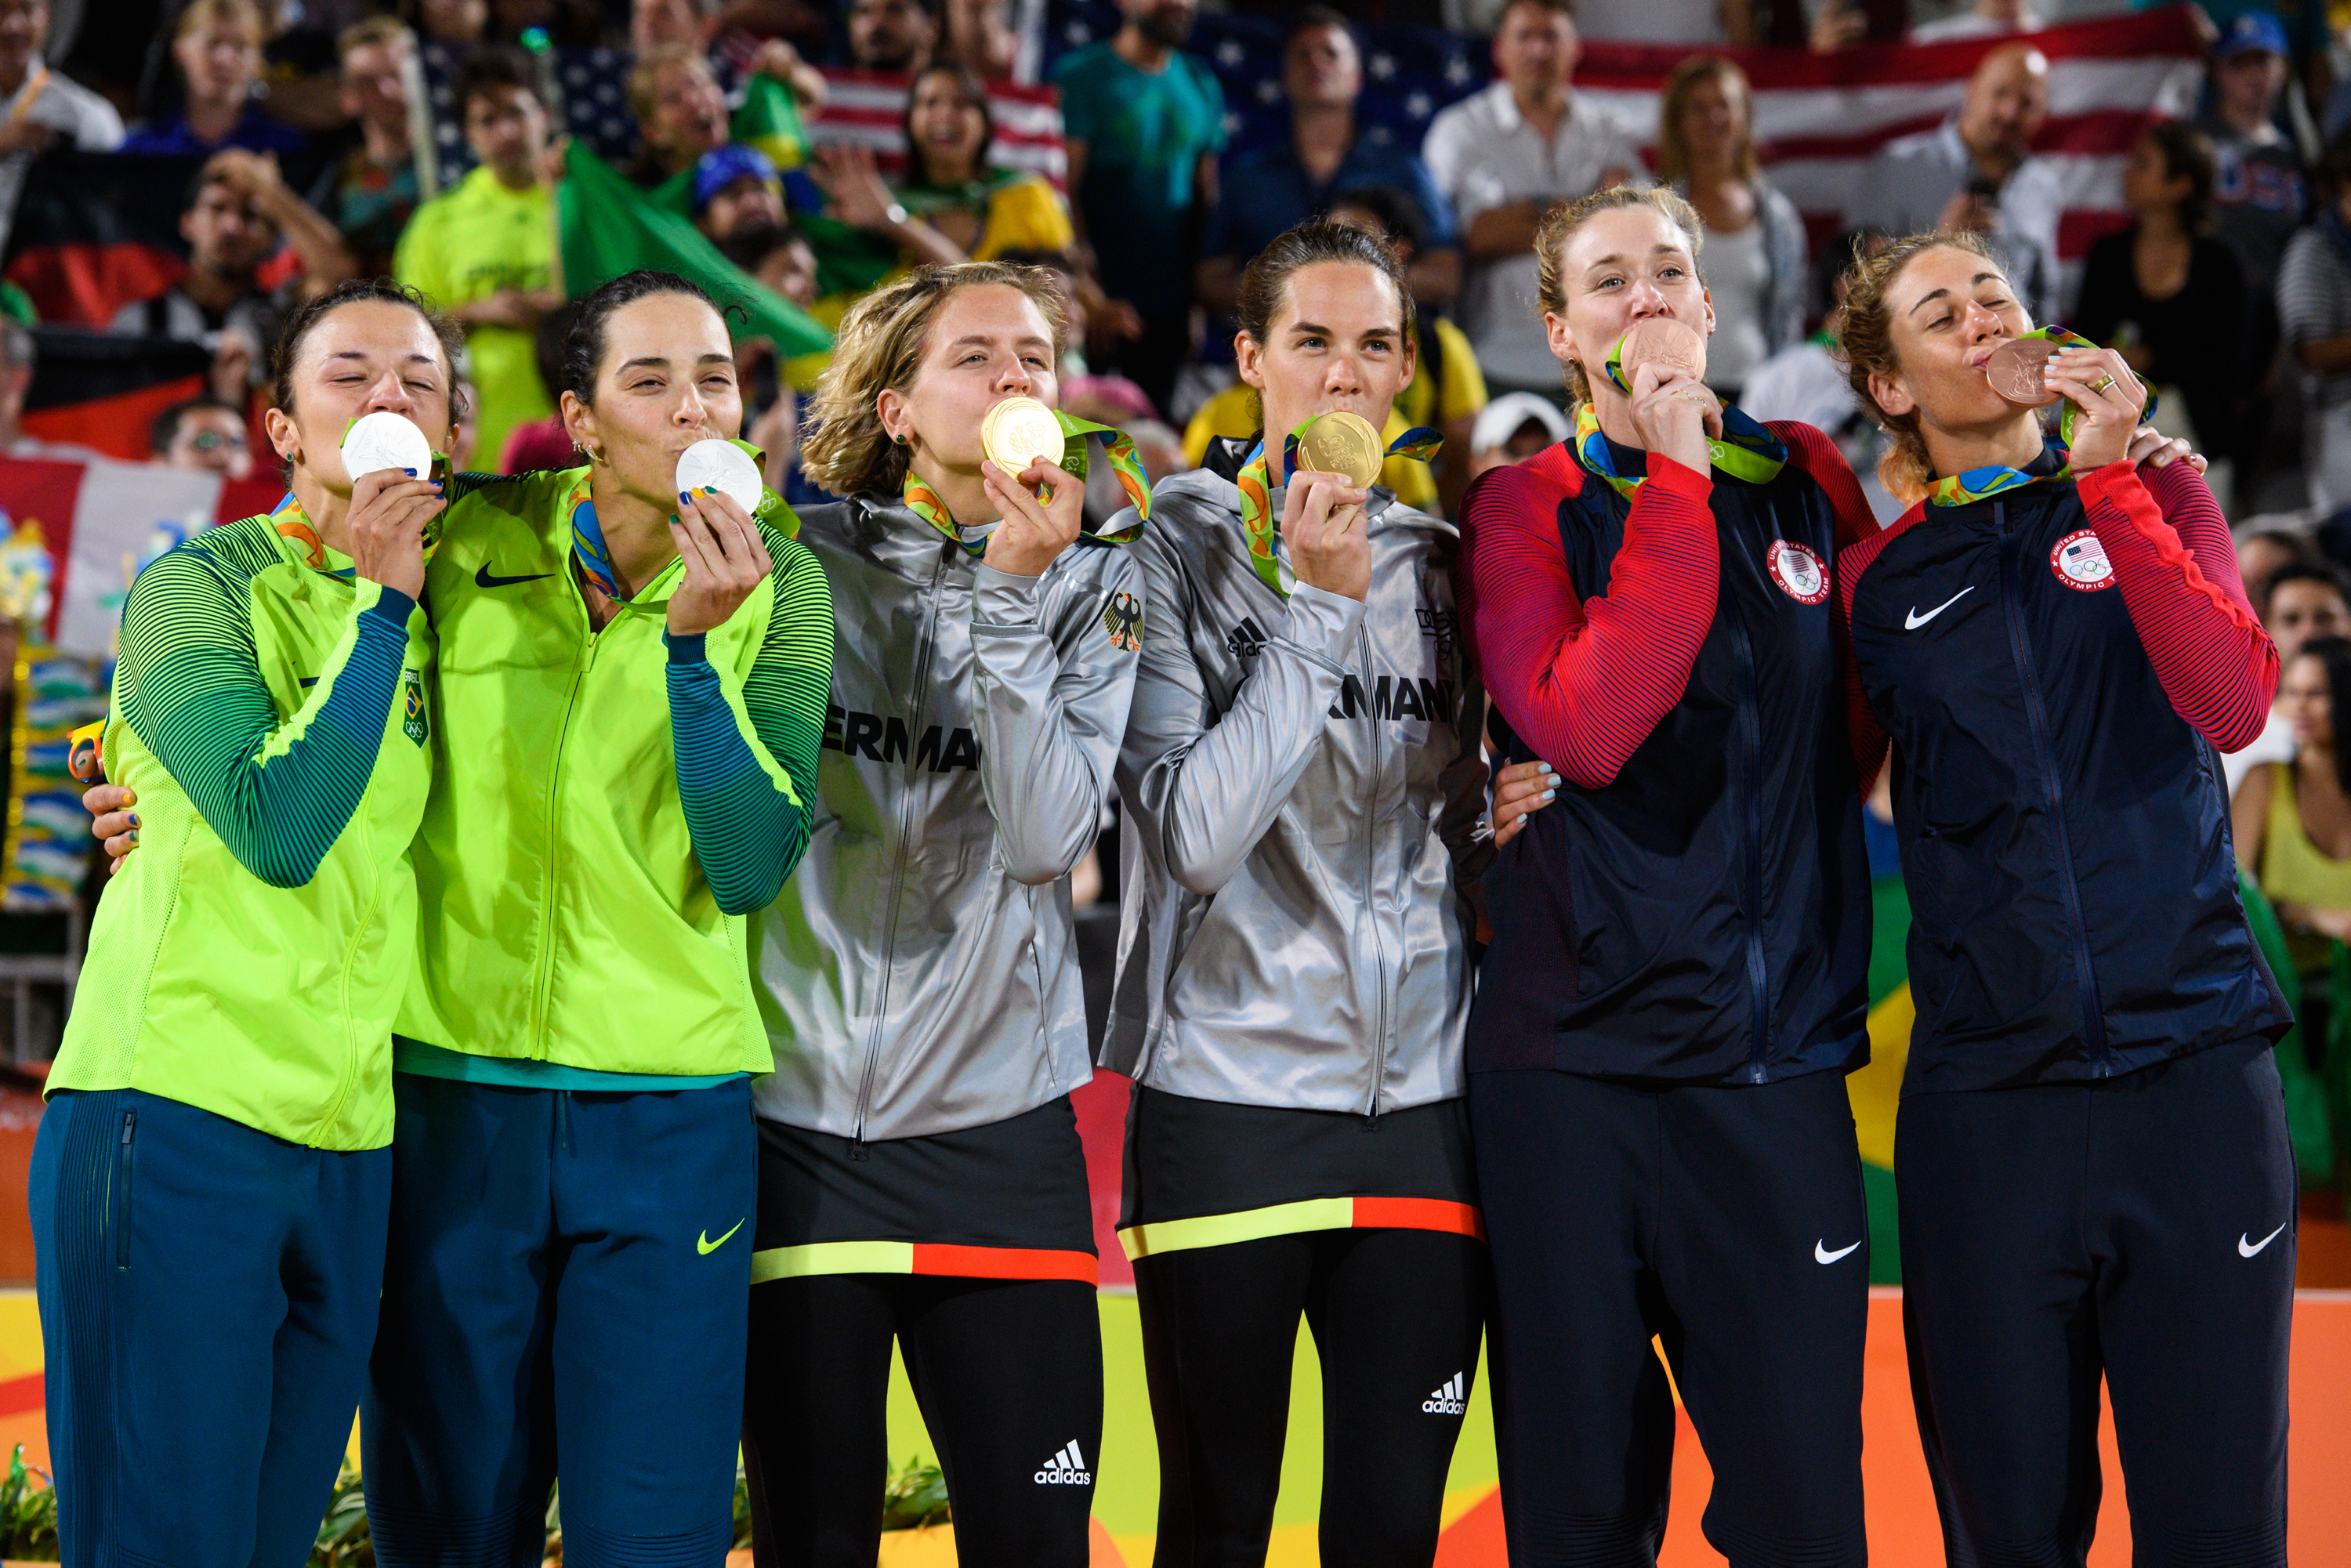 Rio 2016 women's beach volleyball medallists